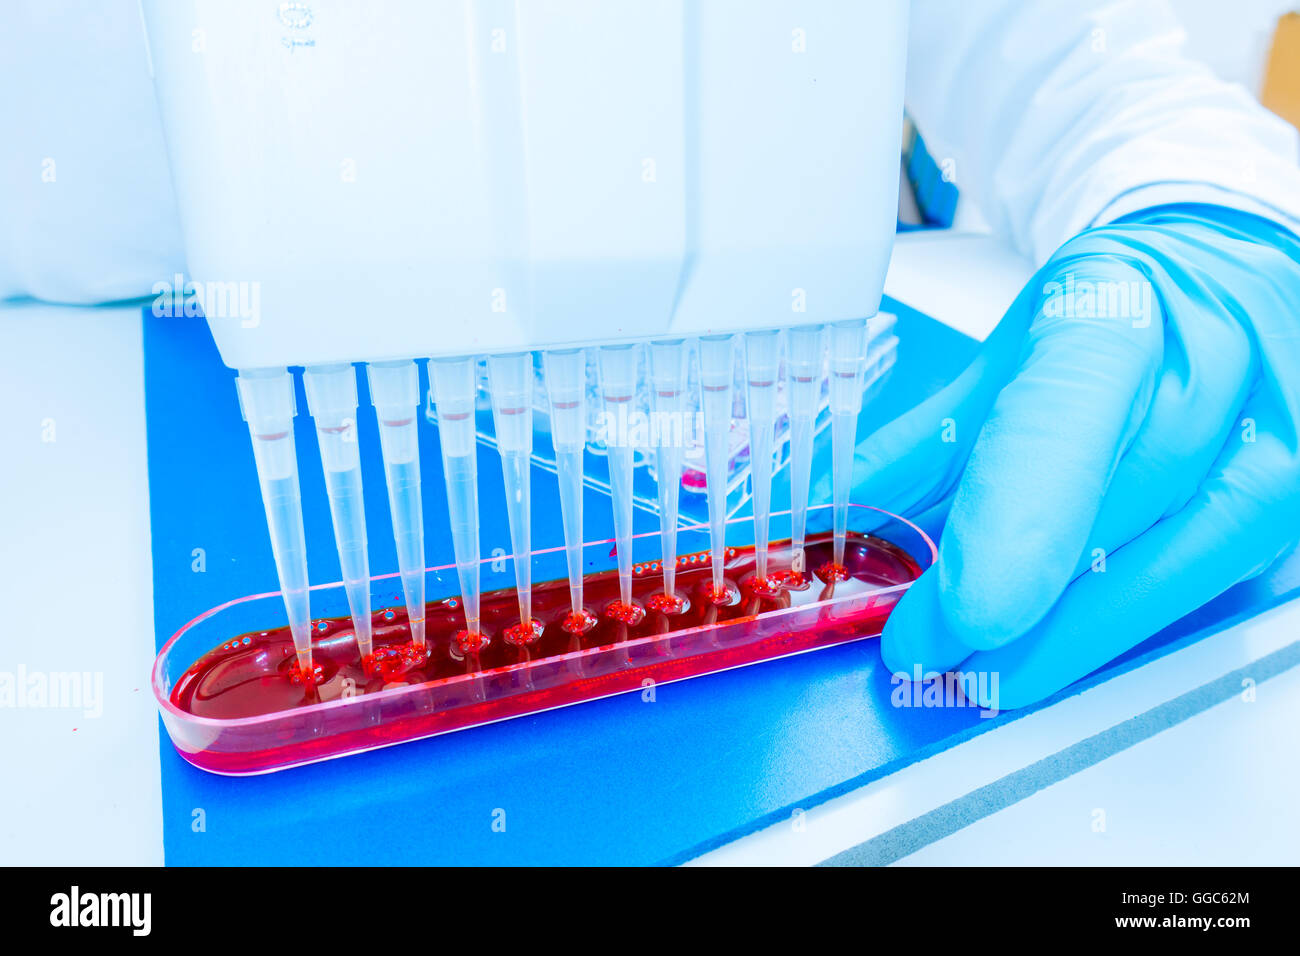 96 well plate for PCR processing, microbiological laboratory - Stock Image